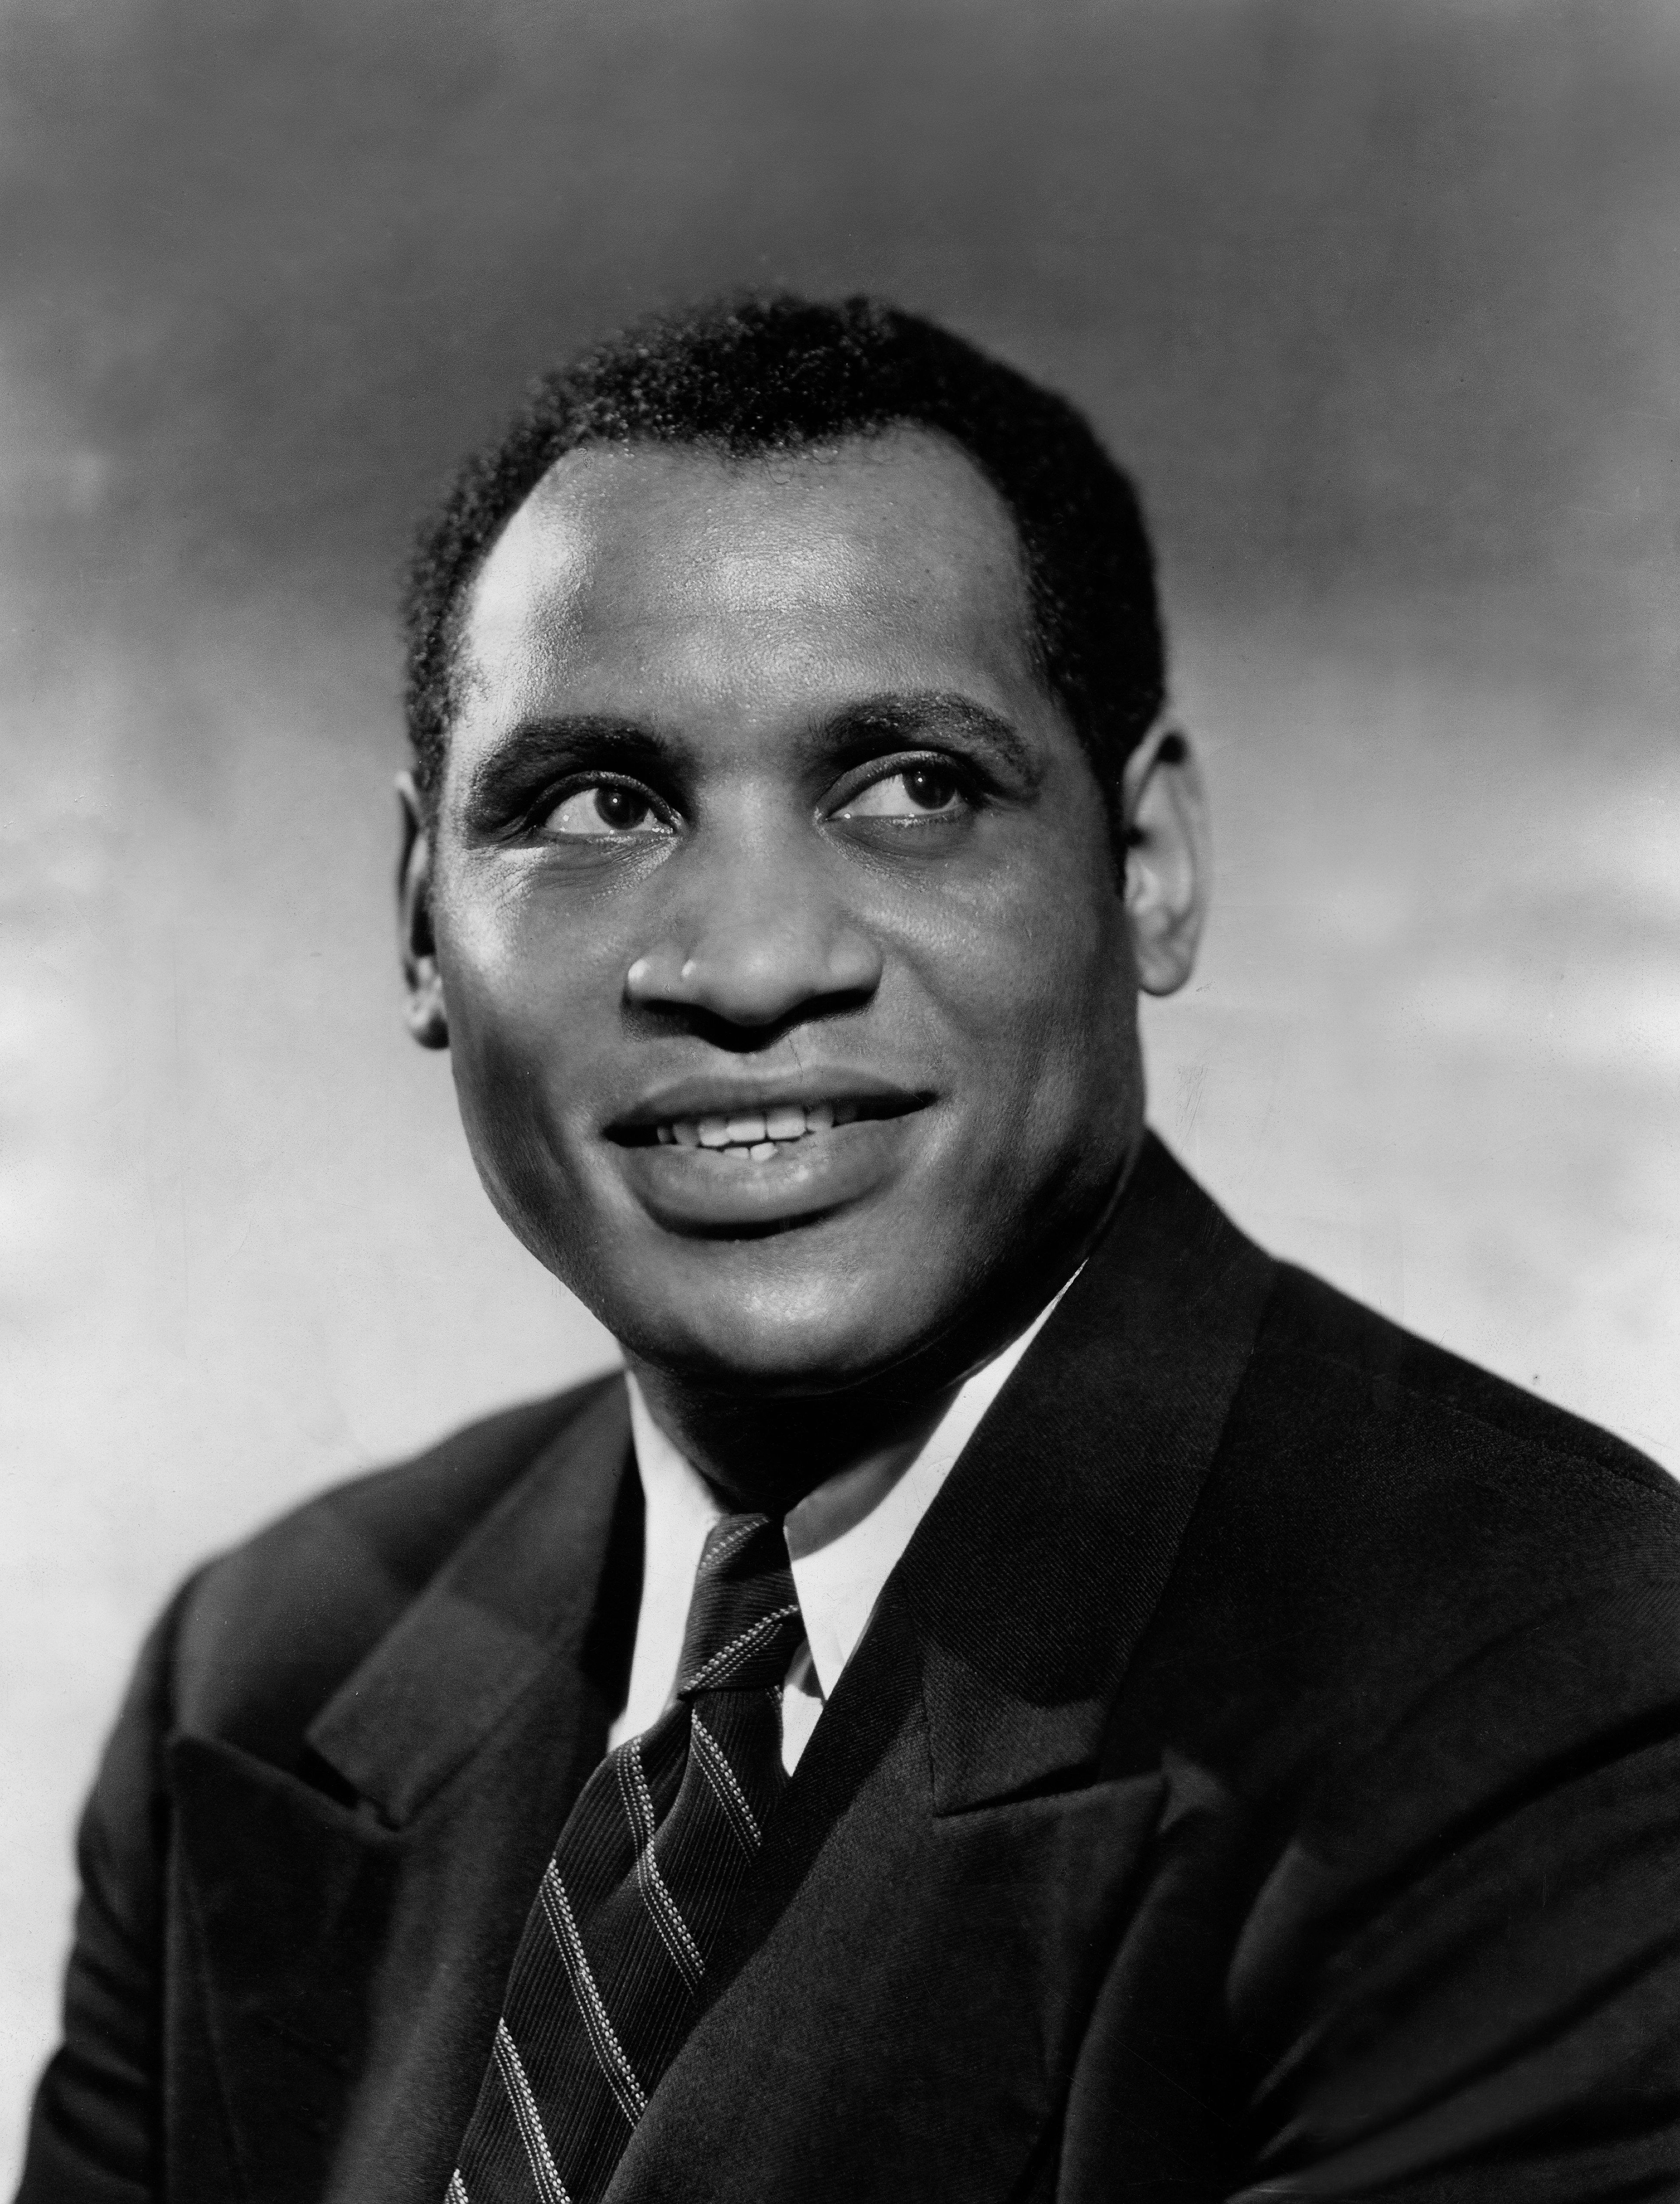 (GERMANY OUT) Paul Robeson, Actor, Singer, USA (Photo by ullstein bild/ullstein bild via Getty Images)